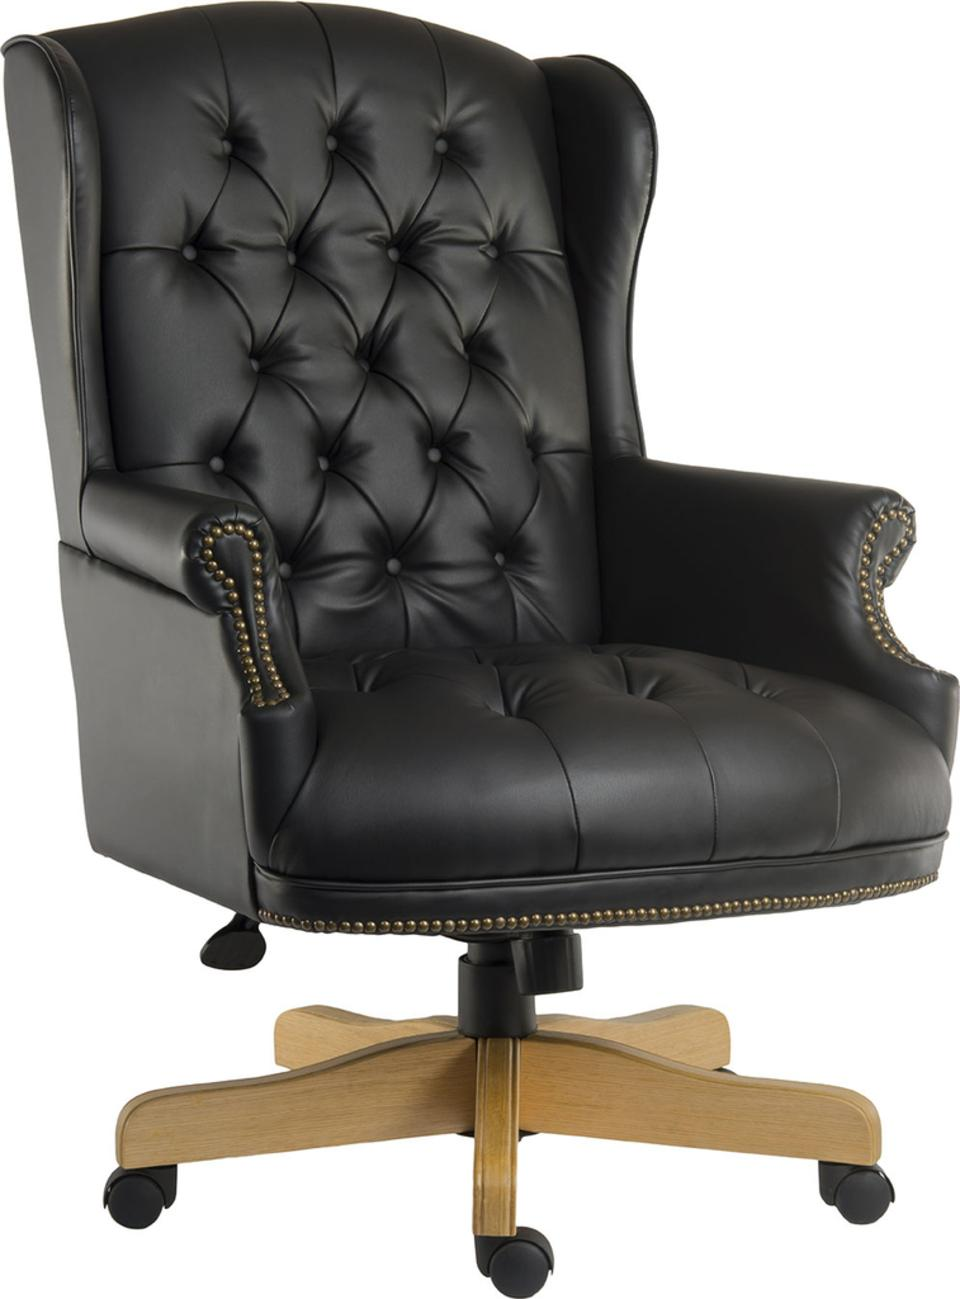 Chairman Noir Executive Chair